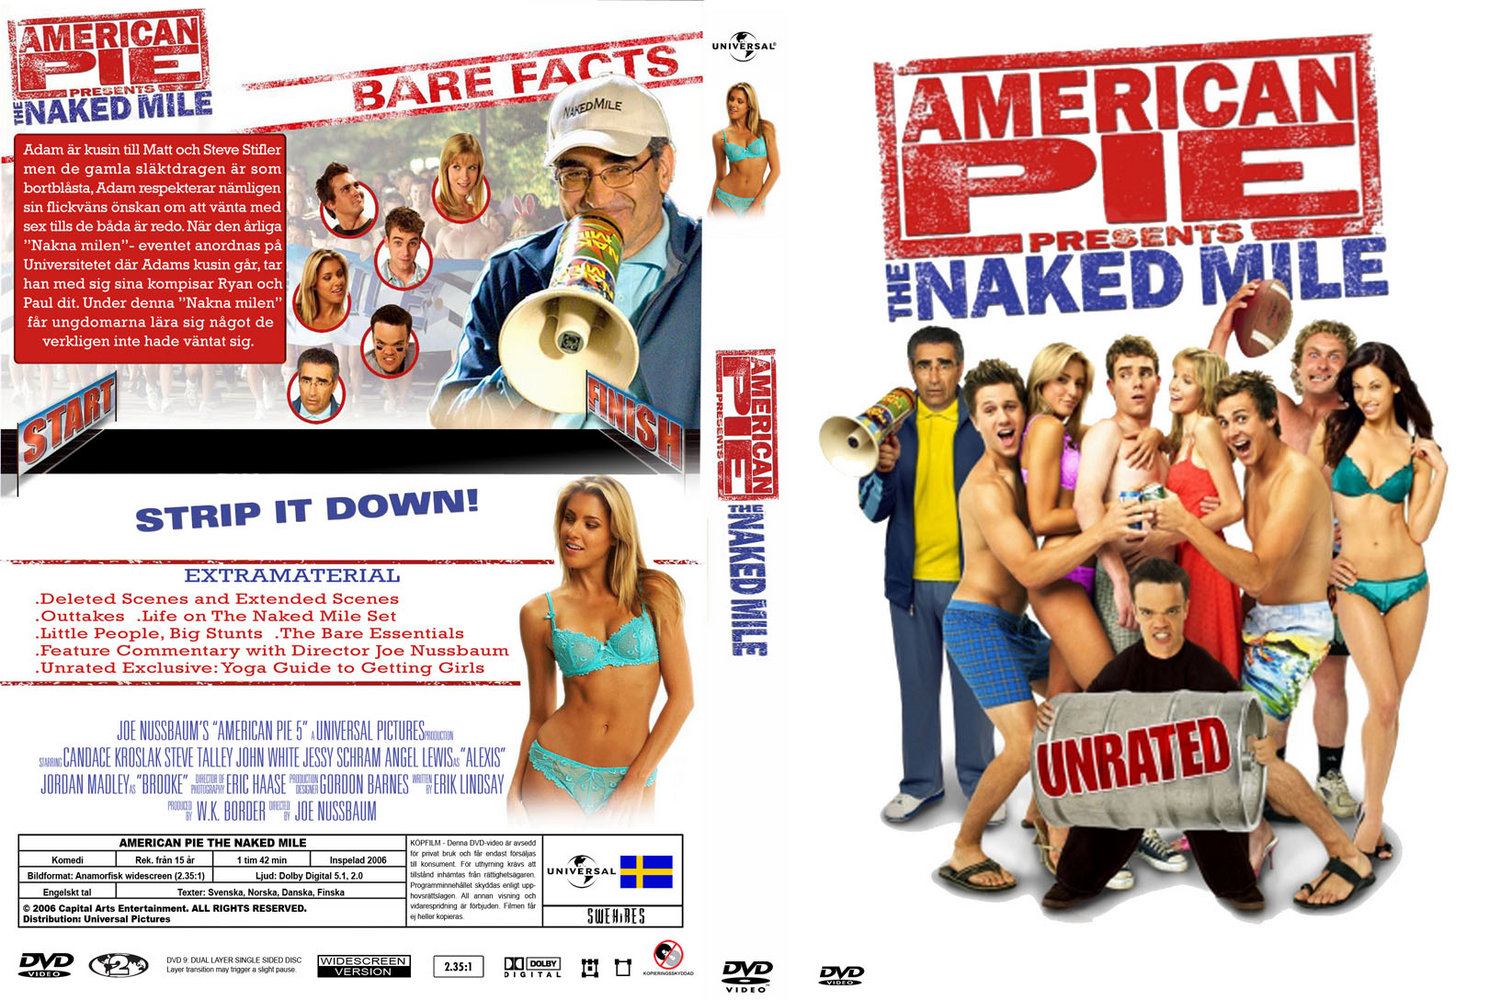 American pie presents the naked mile official trailer